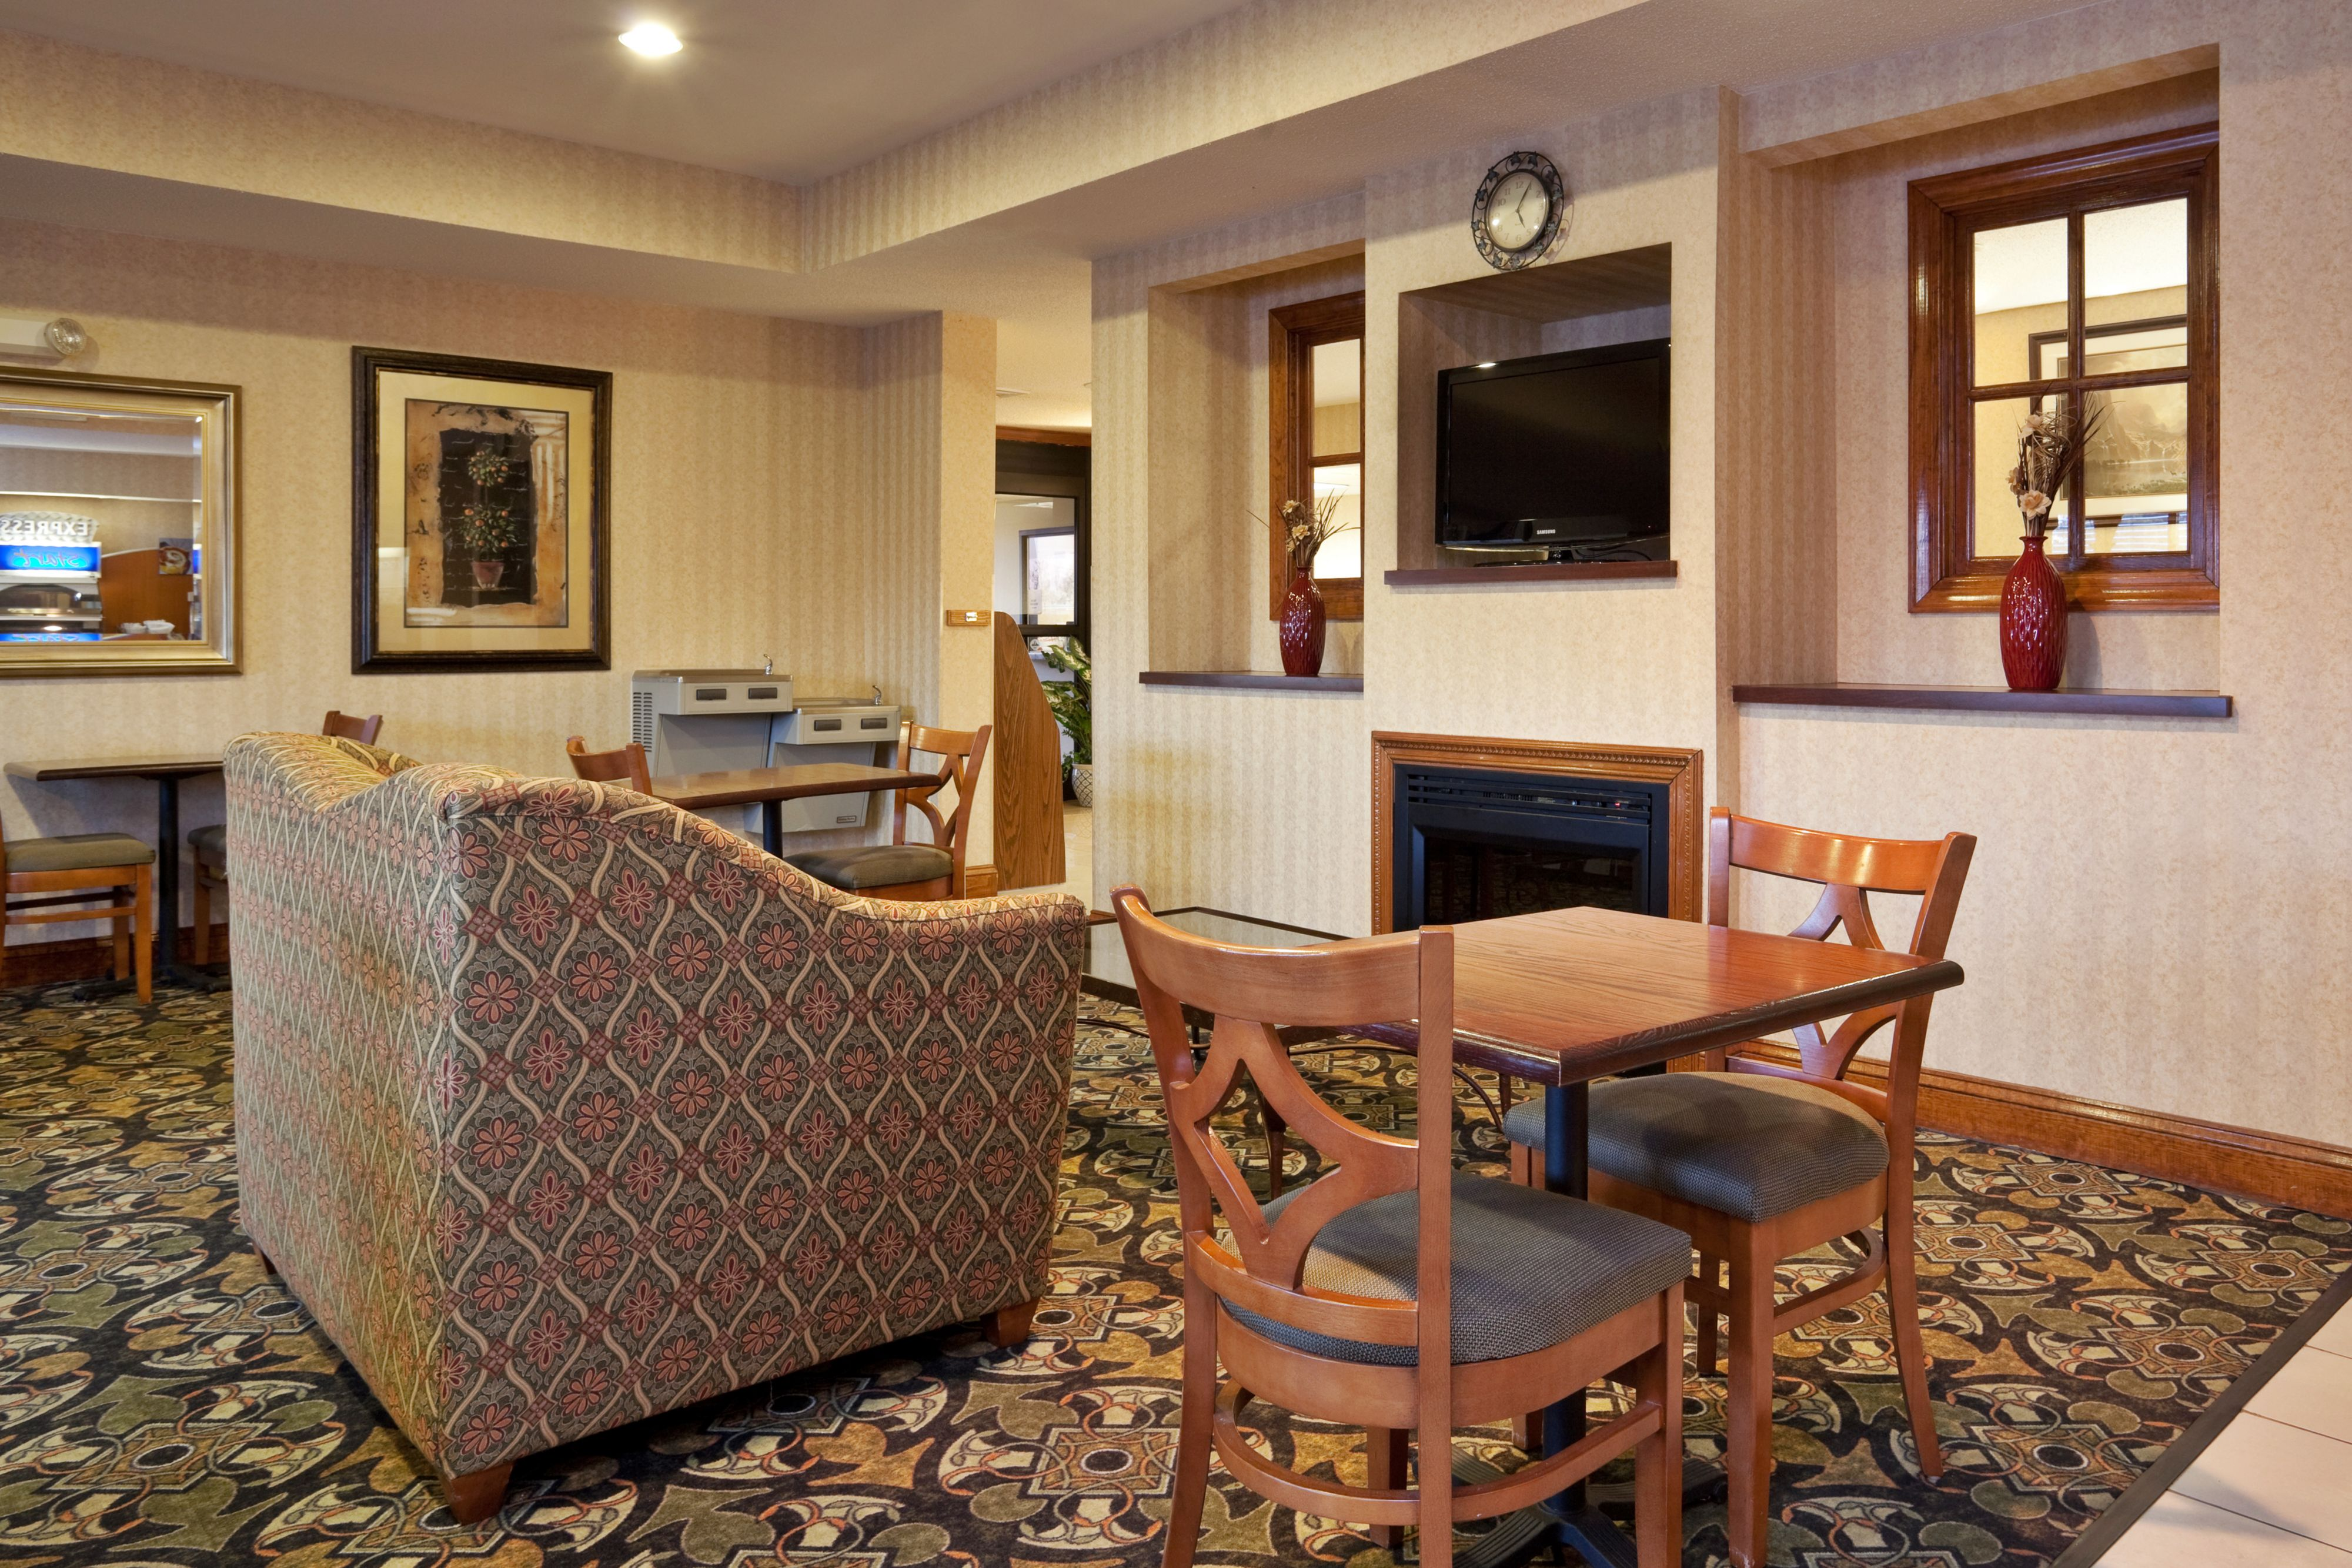 Holiday Inn Express Kernersville image 5